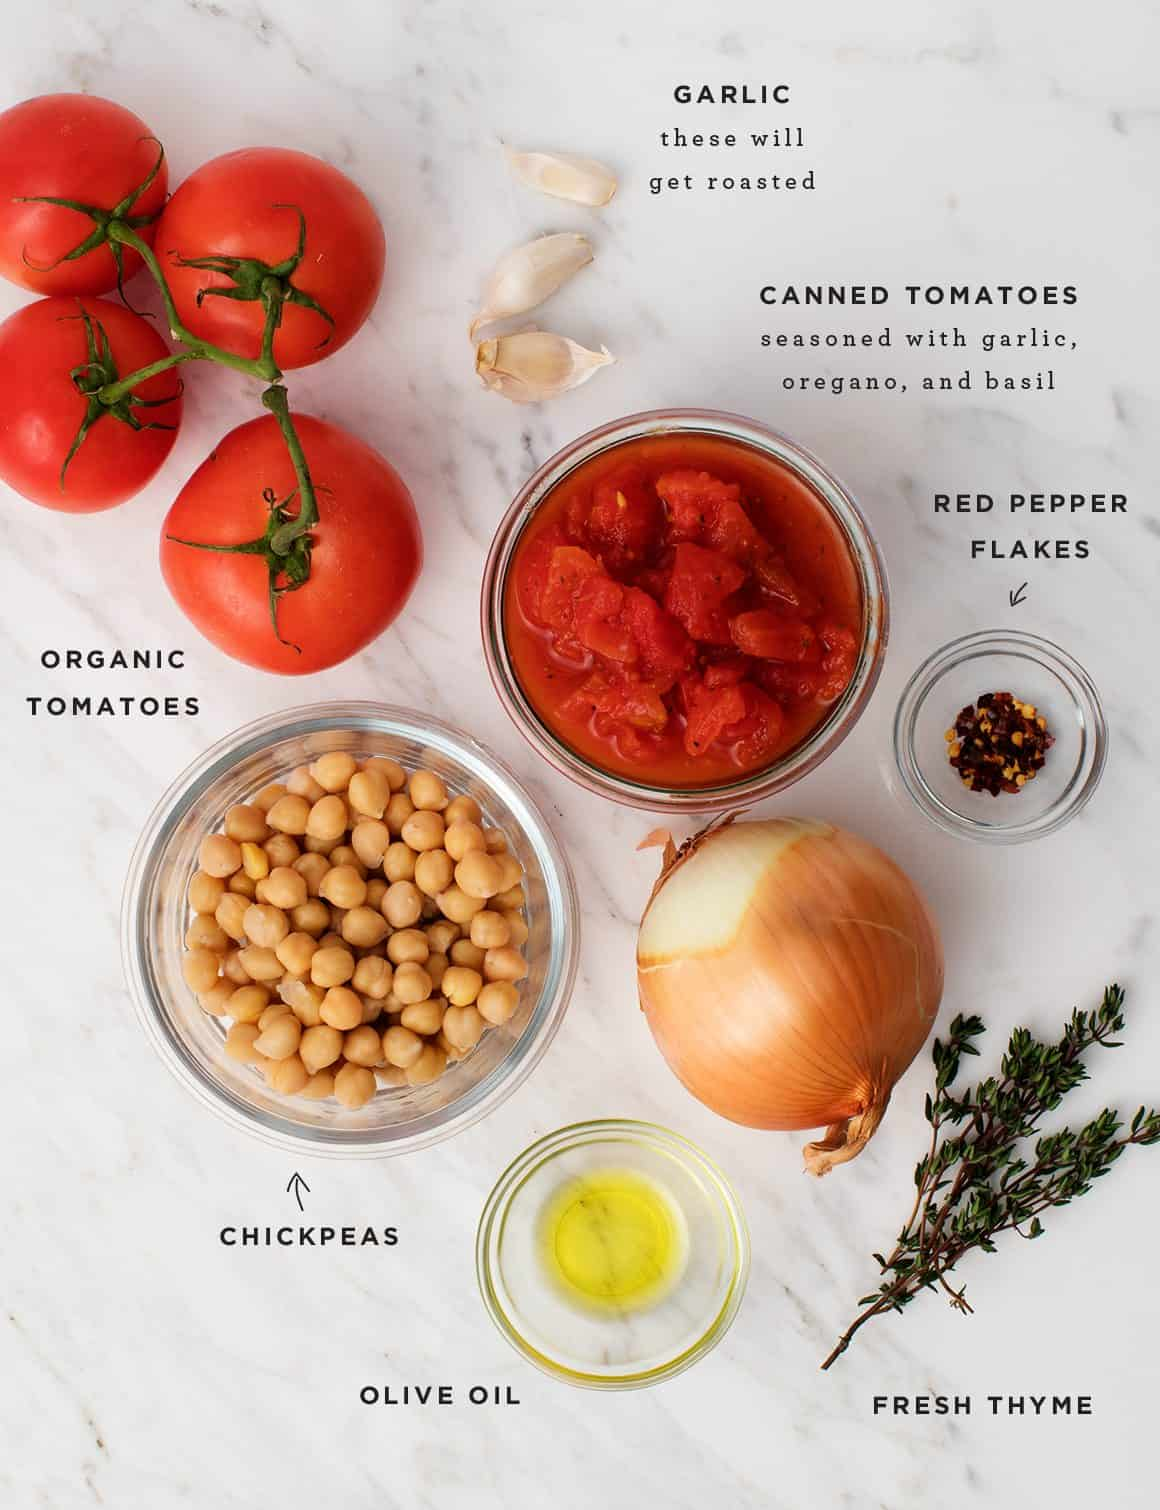 Homemade tomato soup recipe ingredients on marble